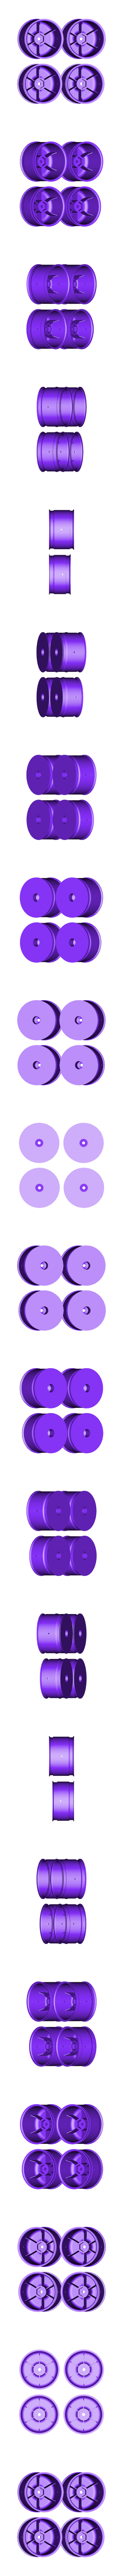 Wheels02.STL Download free STL file Lynx - Fully 3D-printable 1/10 4wd buggy • Object to 3D print, tahustvedt